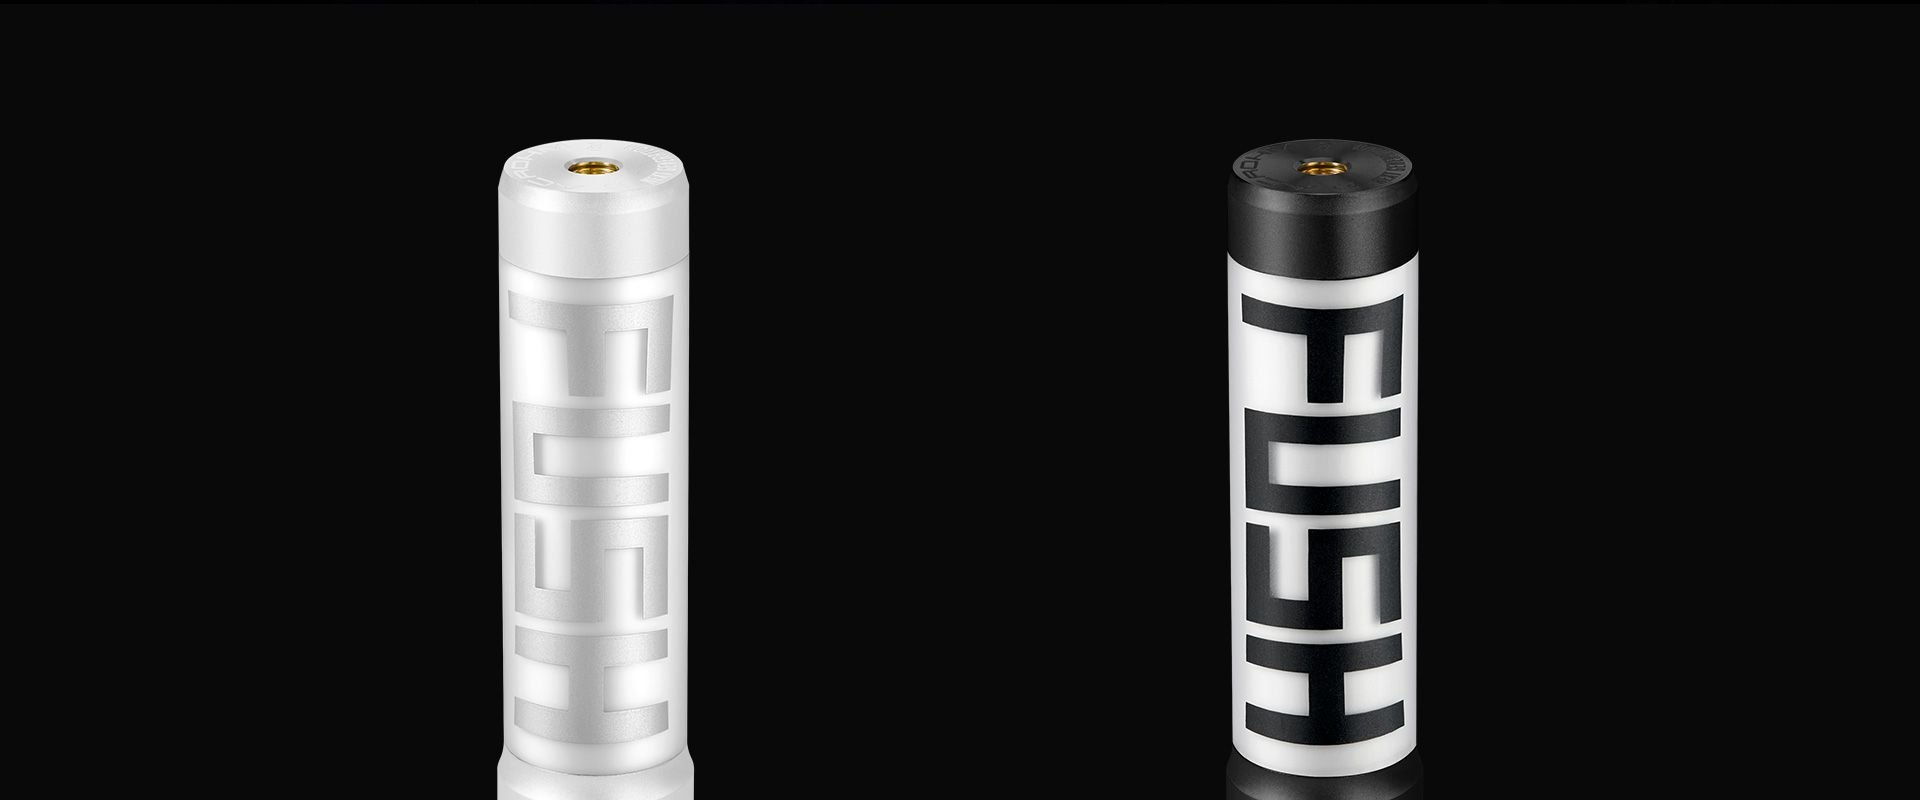 ACROHM | FUSH Semi-Mech Mod of Light Tube with Protection